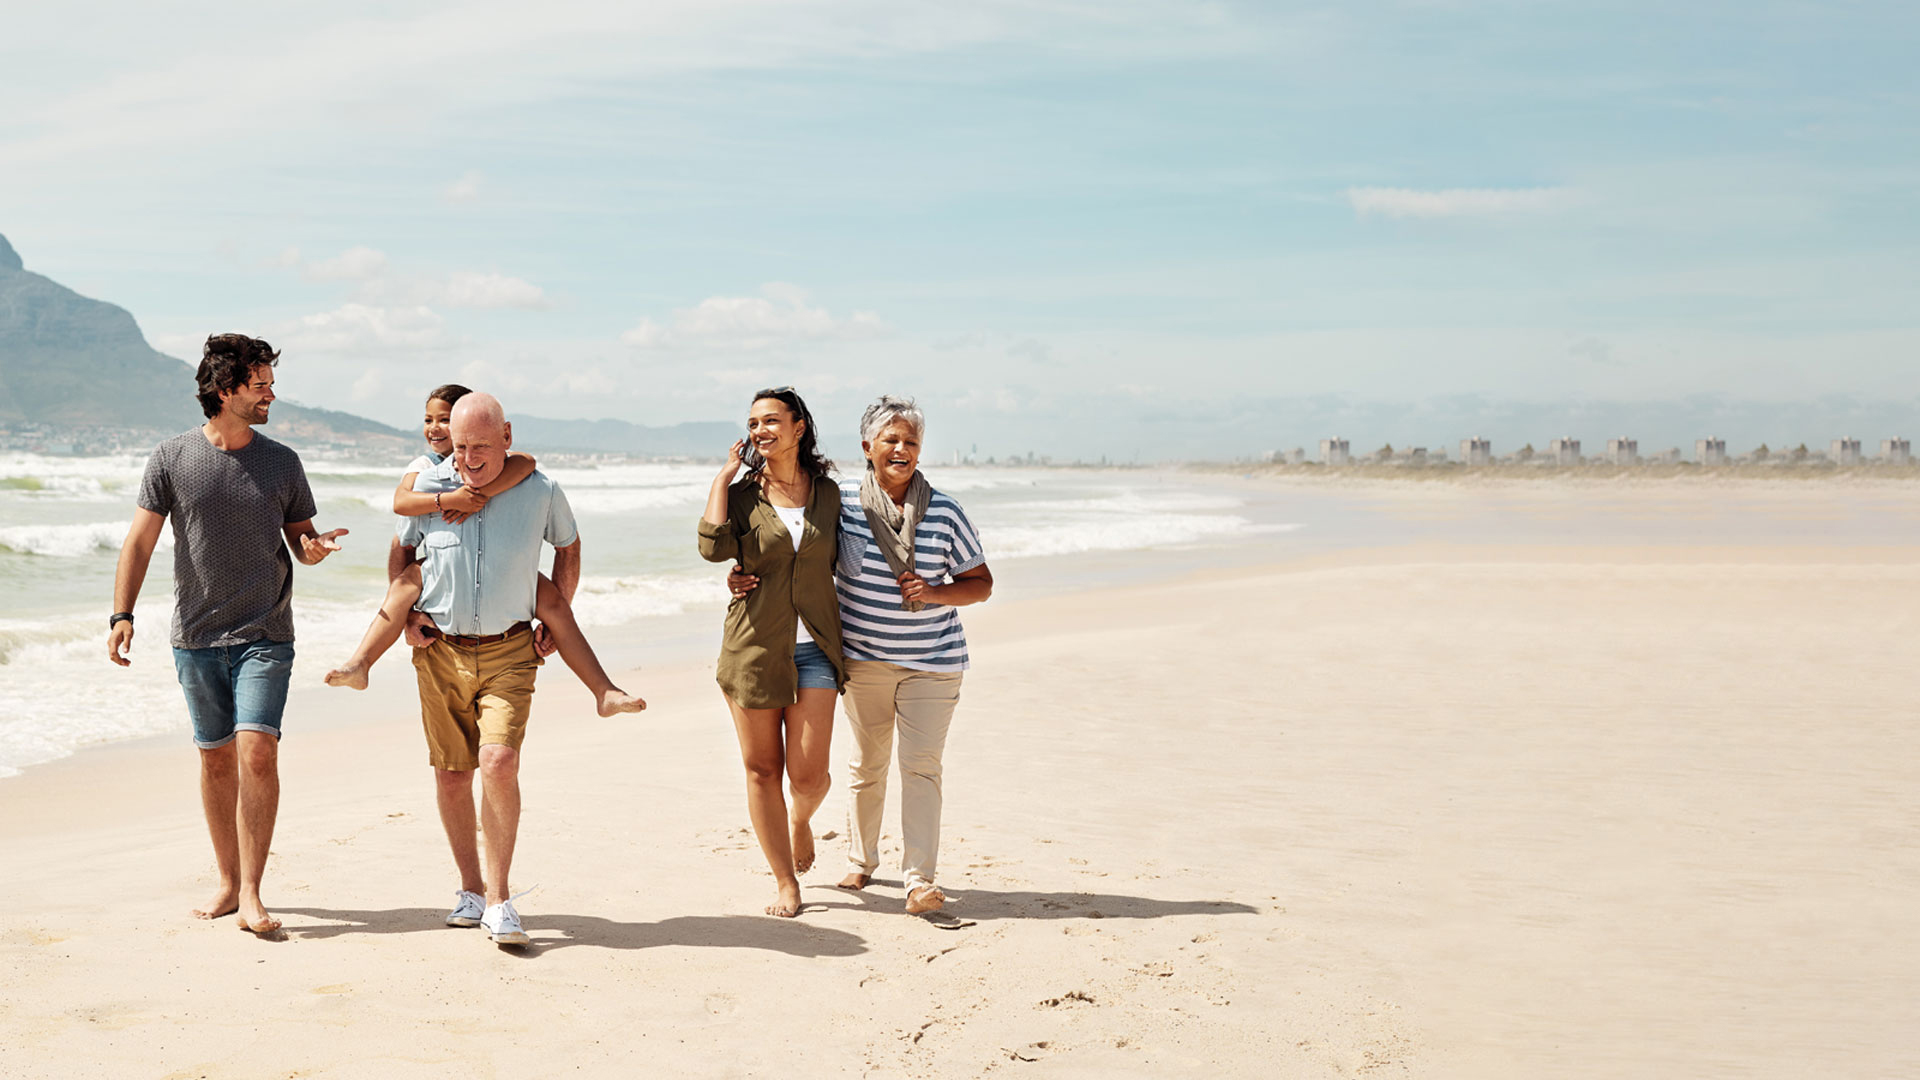 Shot of an adorable little girl having a fun day at the beach with her parents and grandparents